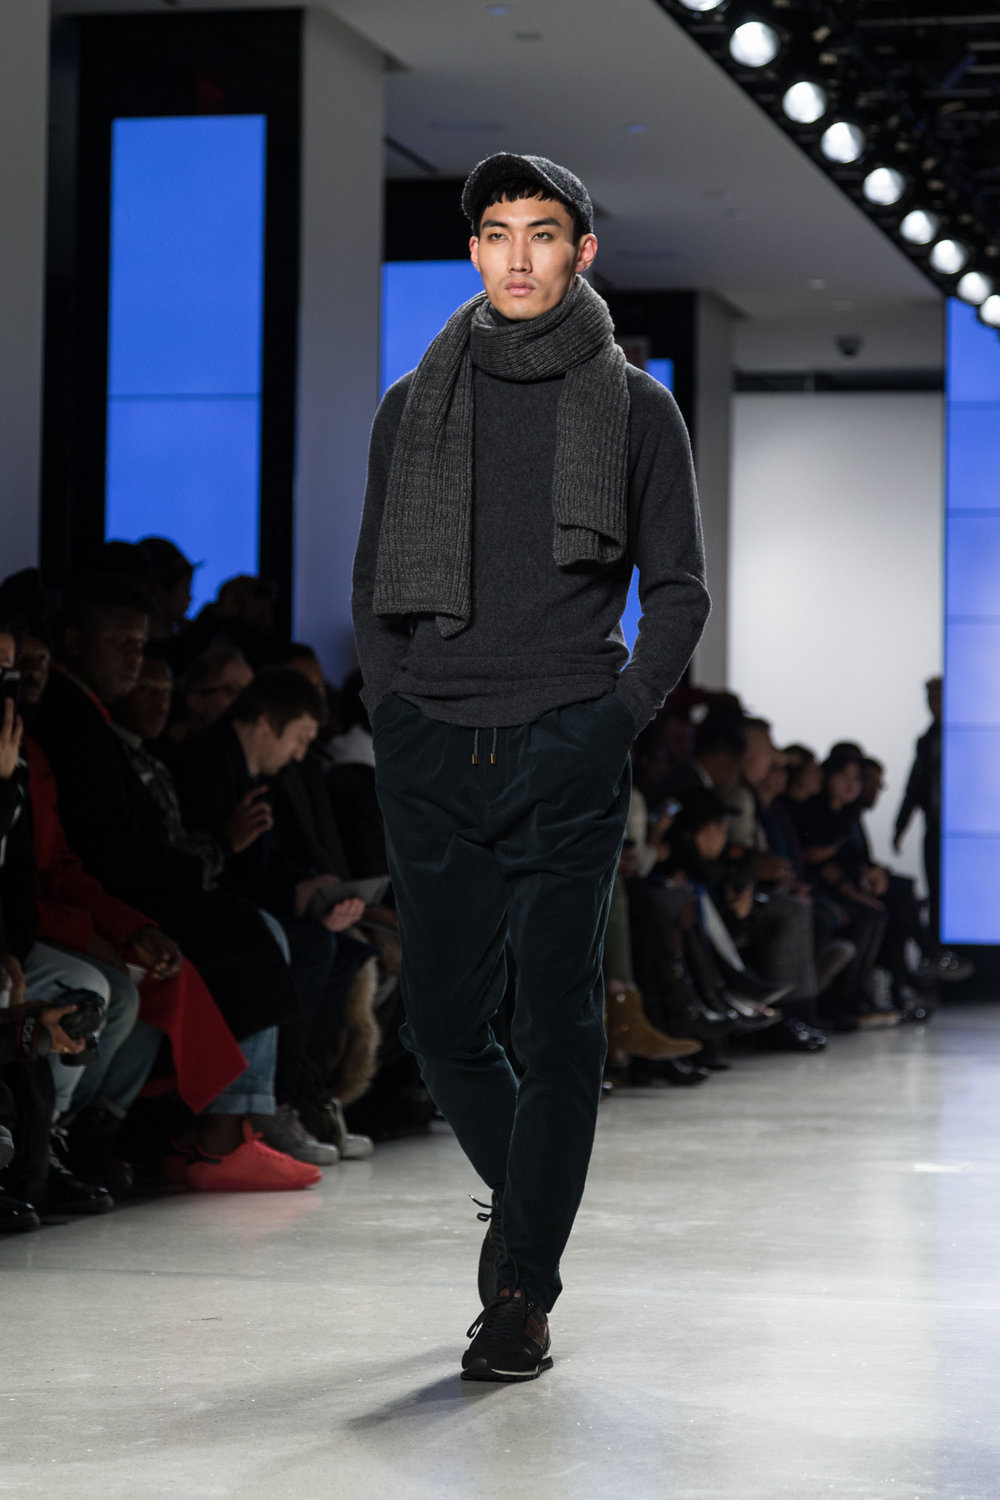 Brett Johnson_FW 2017 _Sherridon Poyer-3230.jpg